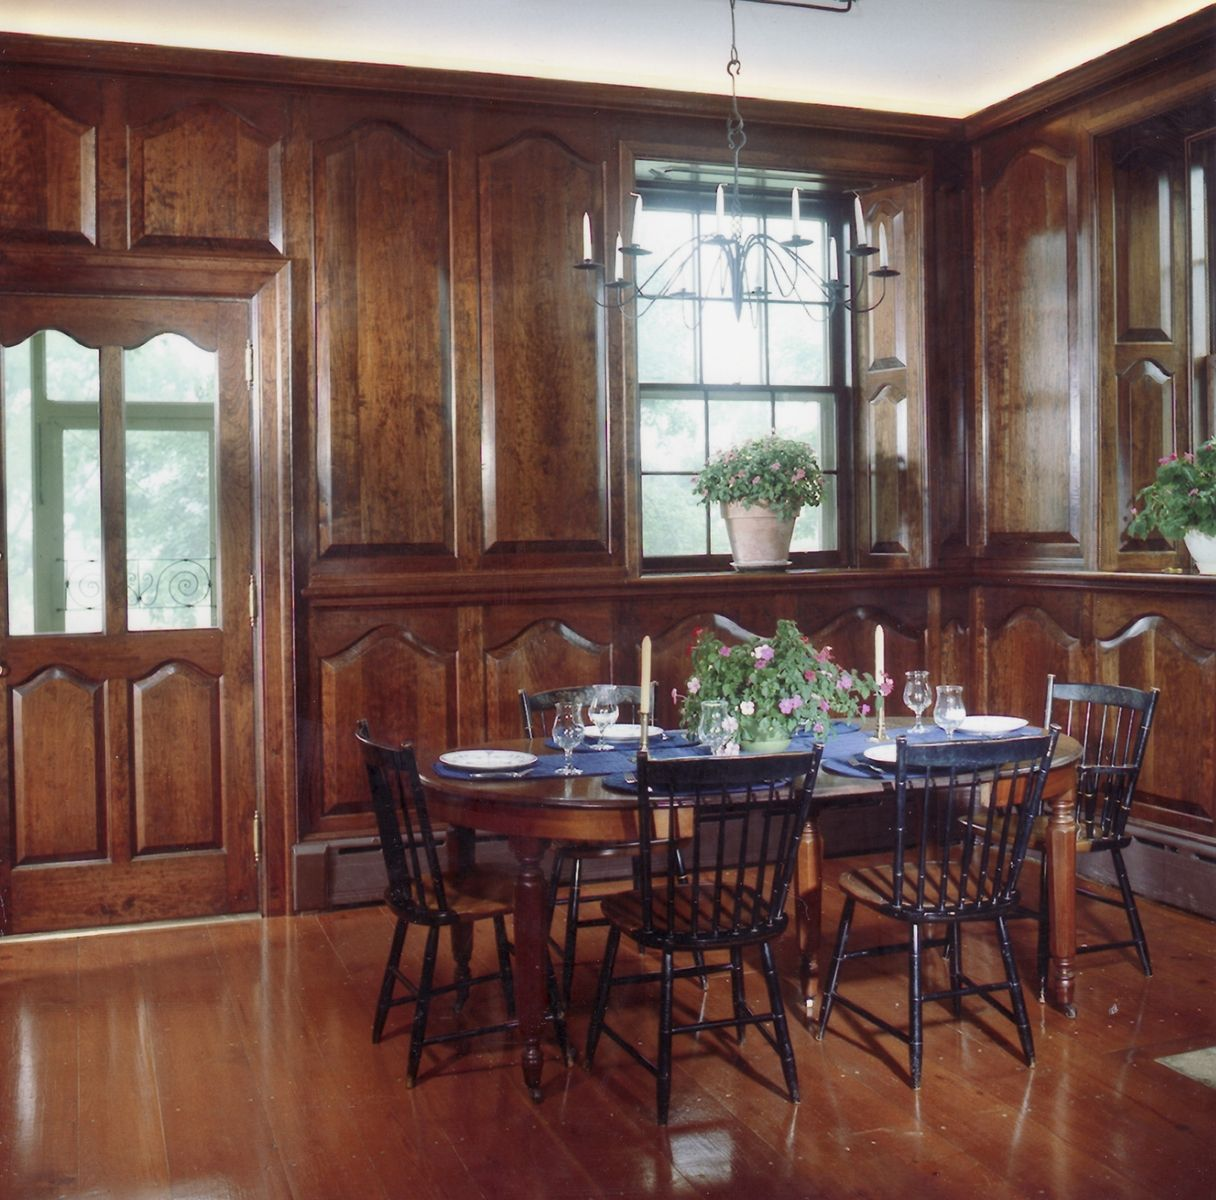 Kitchen Wall Wainscoting: Custom Made Formal Wall Paneling & Door